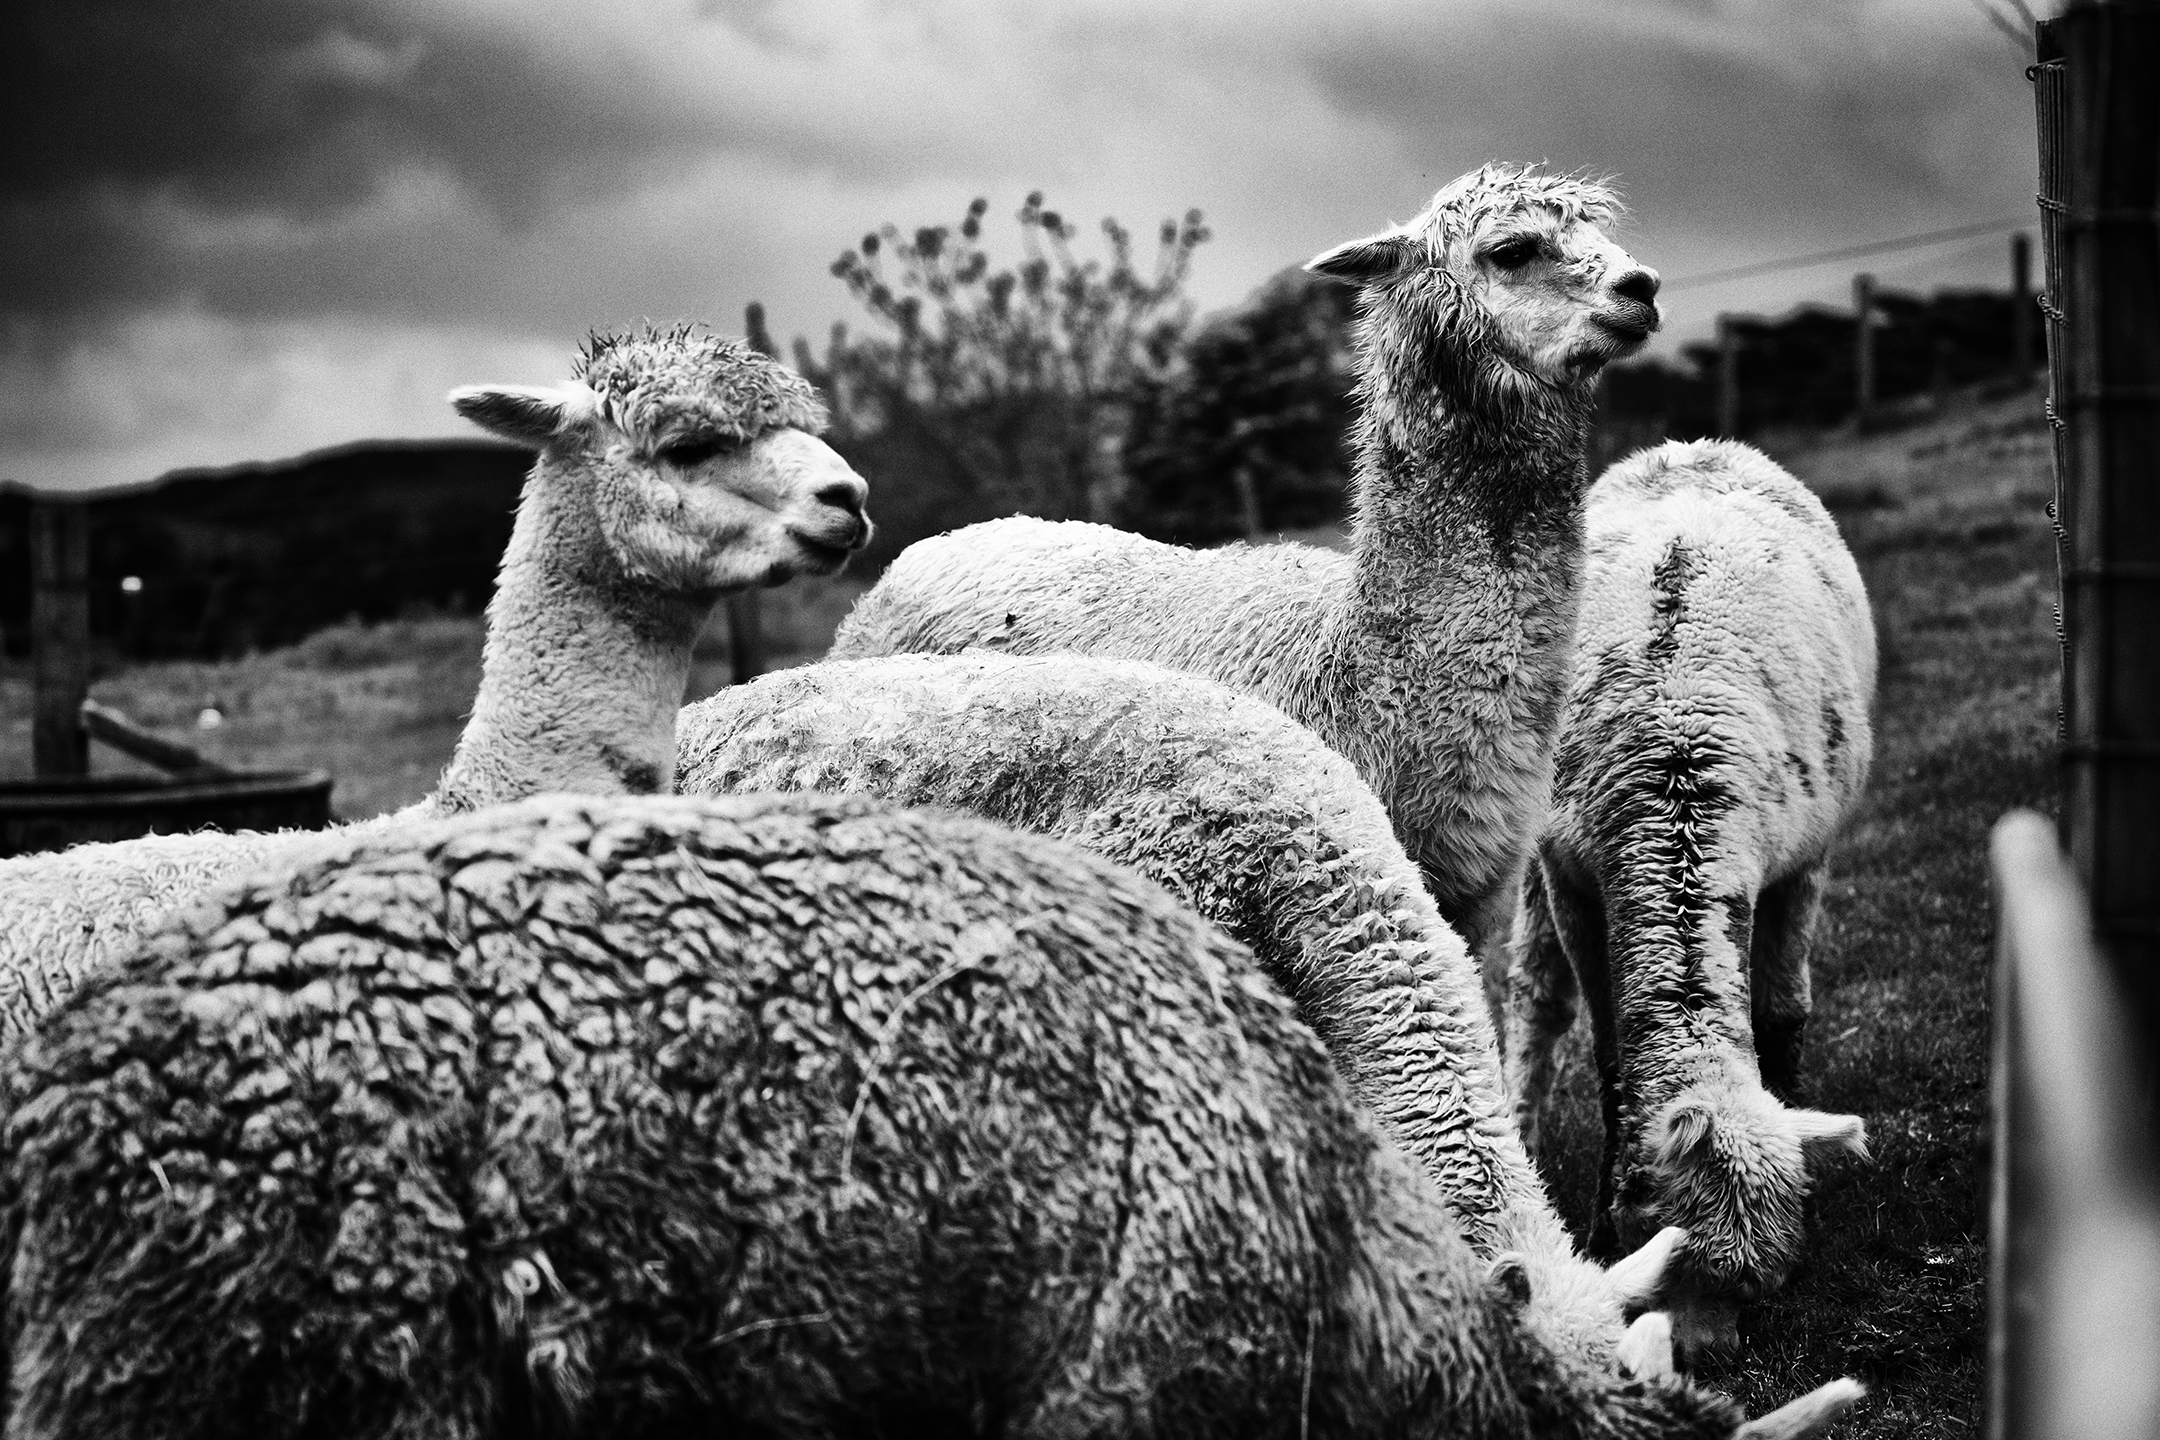 Raglan, Alpacas on an Eel Farm